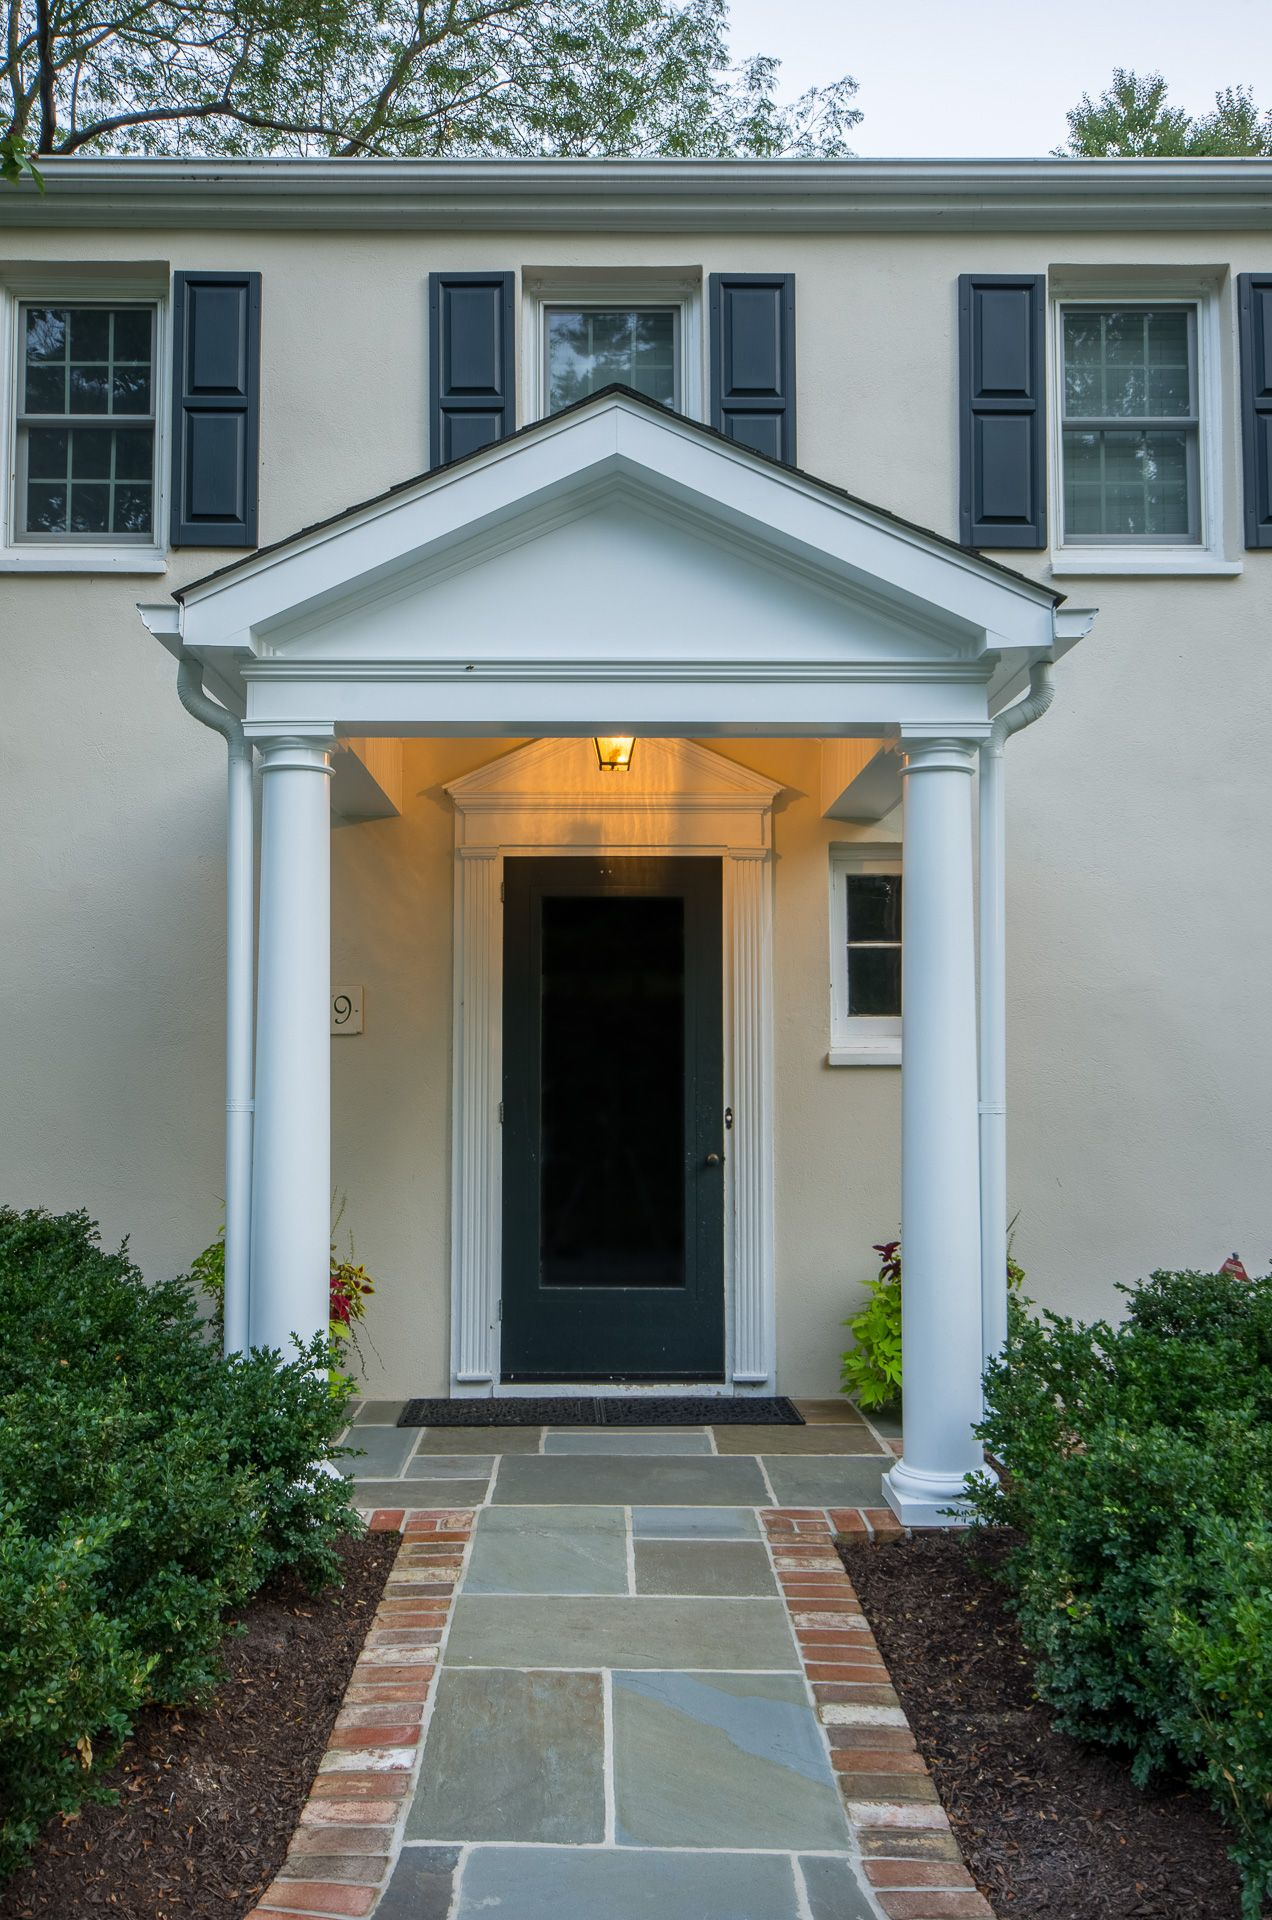 Outdoor Living | Outdoor living design, Portico entry ... on Disabatino Outdoor Living id=89372